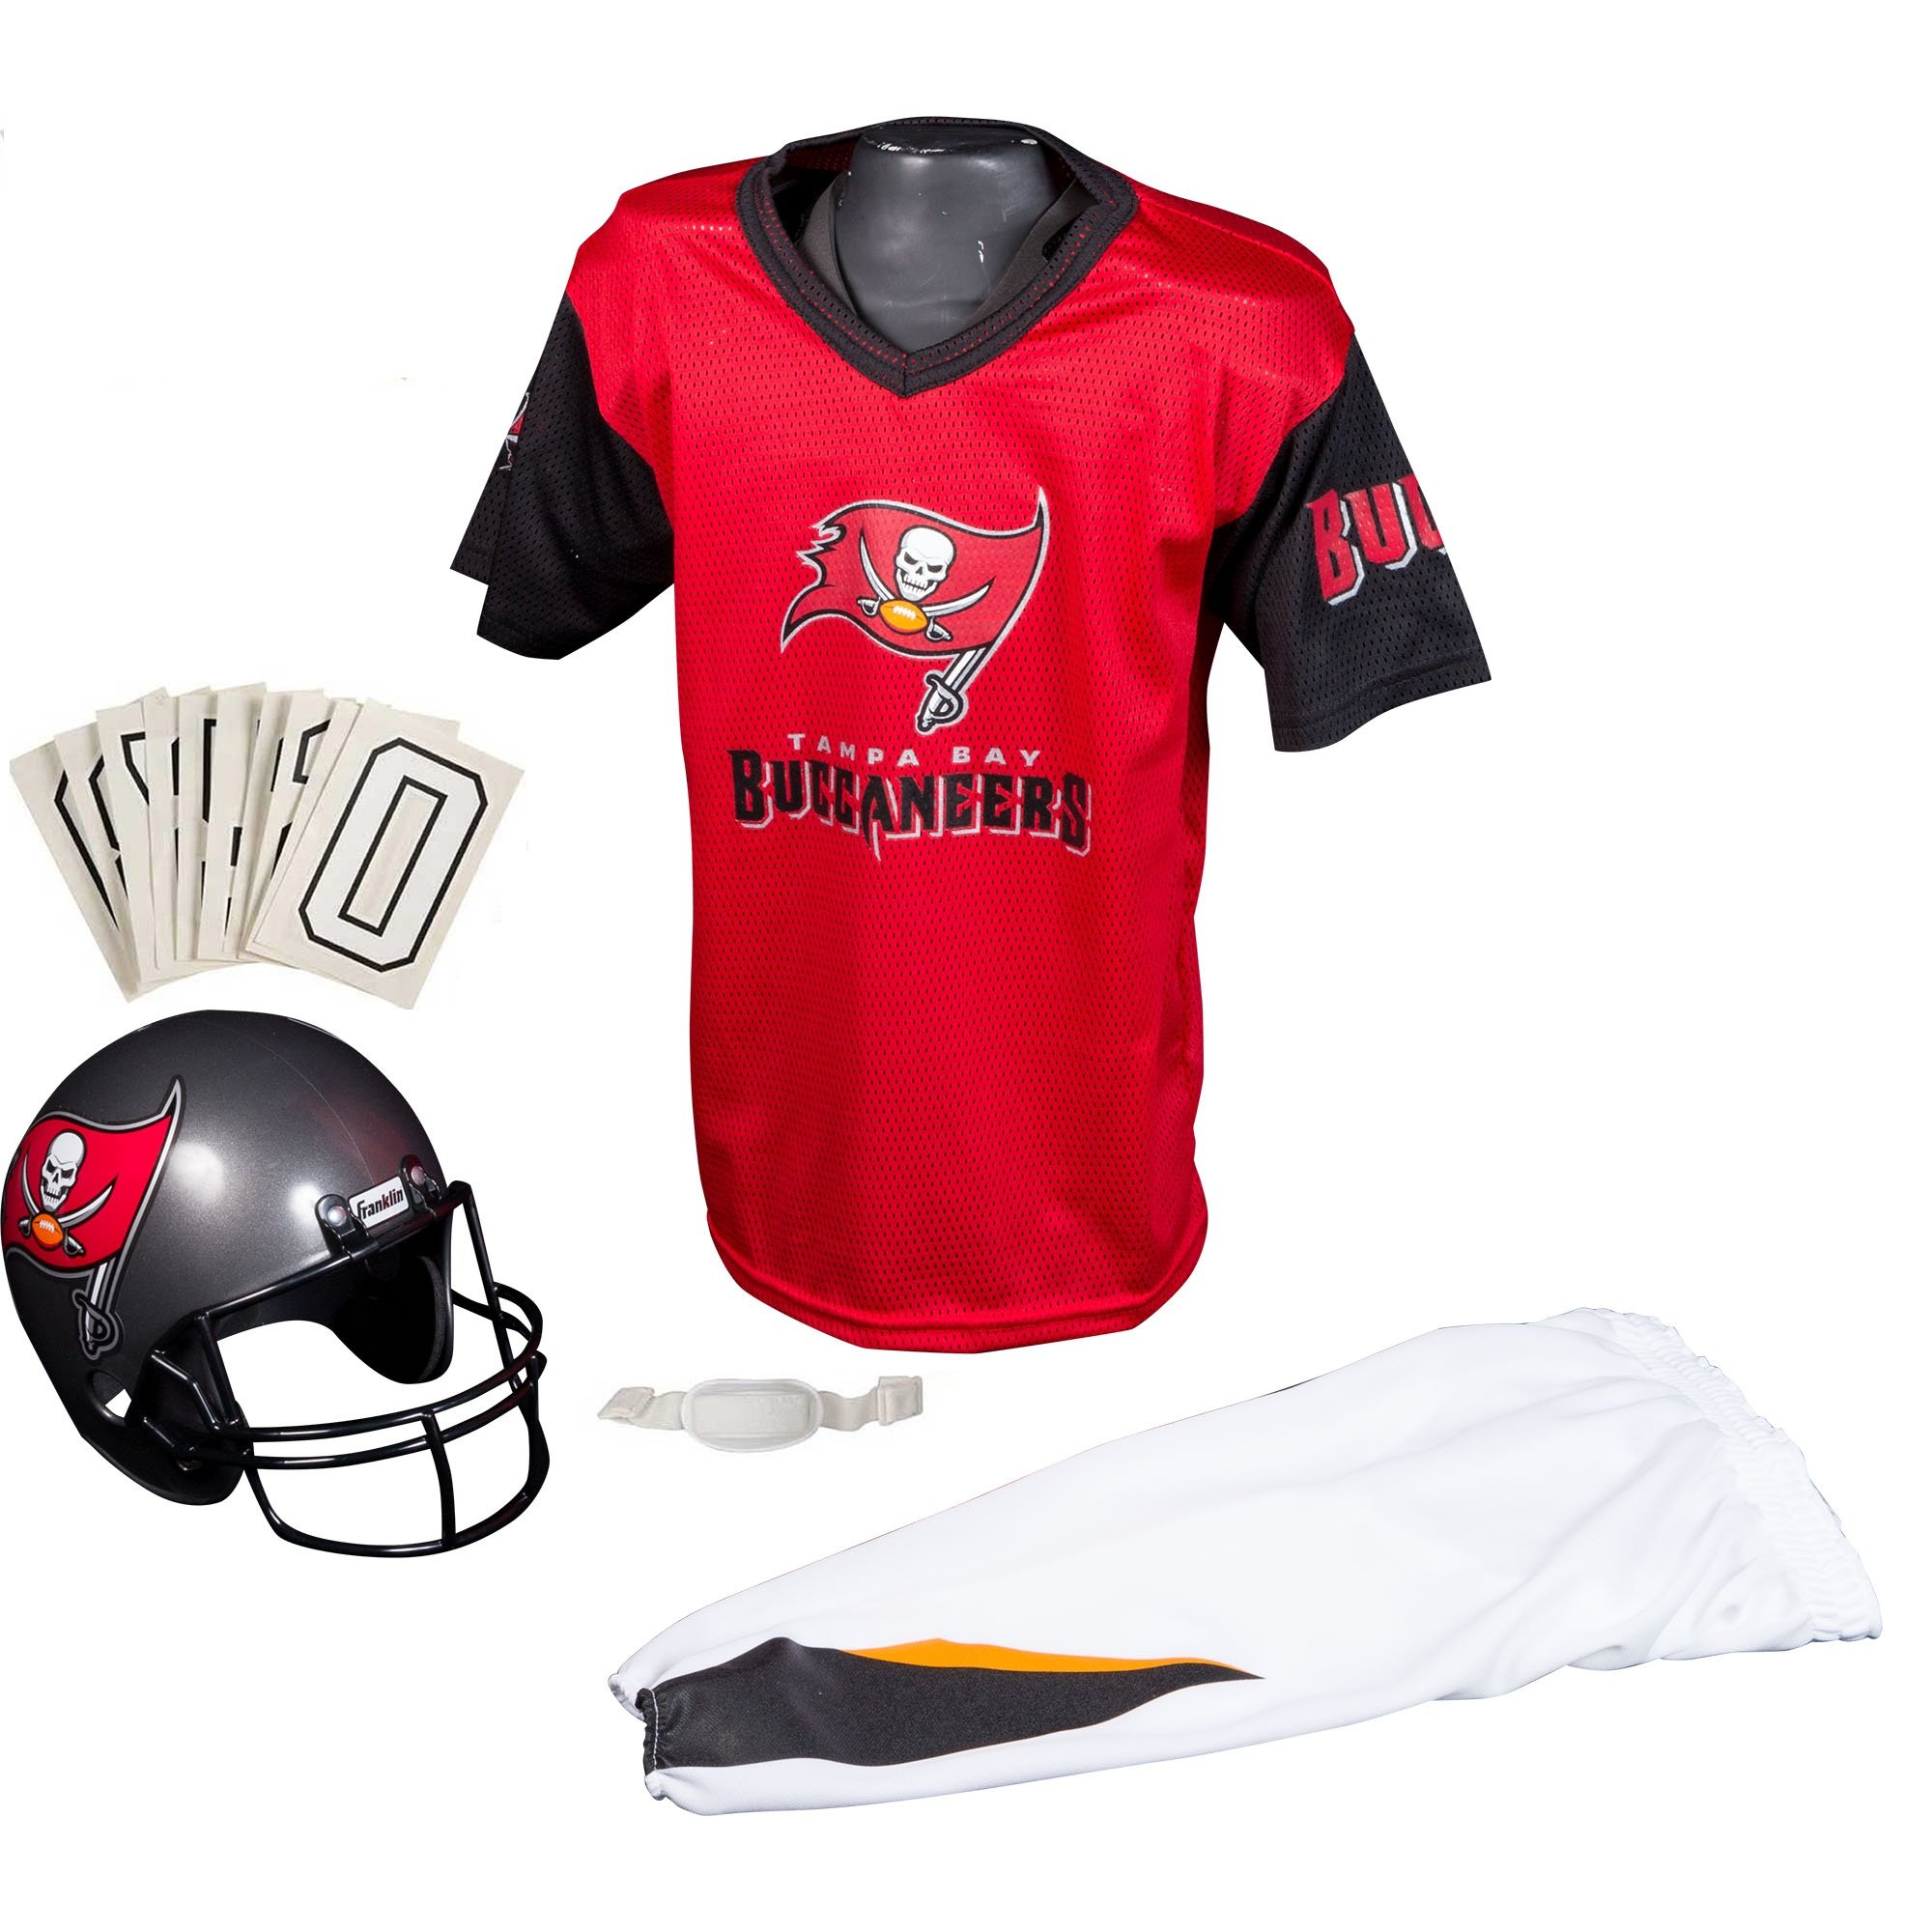 c9c68e48 Franklin Sports Deluxe NFL-Style Youth Uniform – NFL Kids Helmet, Jersey,  Pants, Chinstrap and Iron on Numbers Included – Football Costume for ...